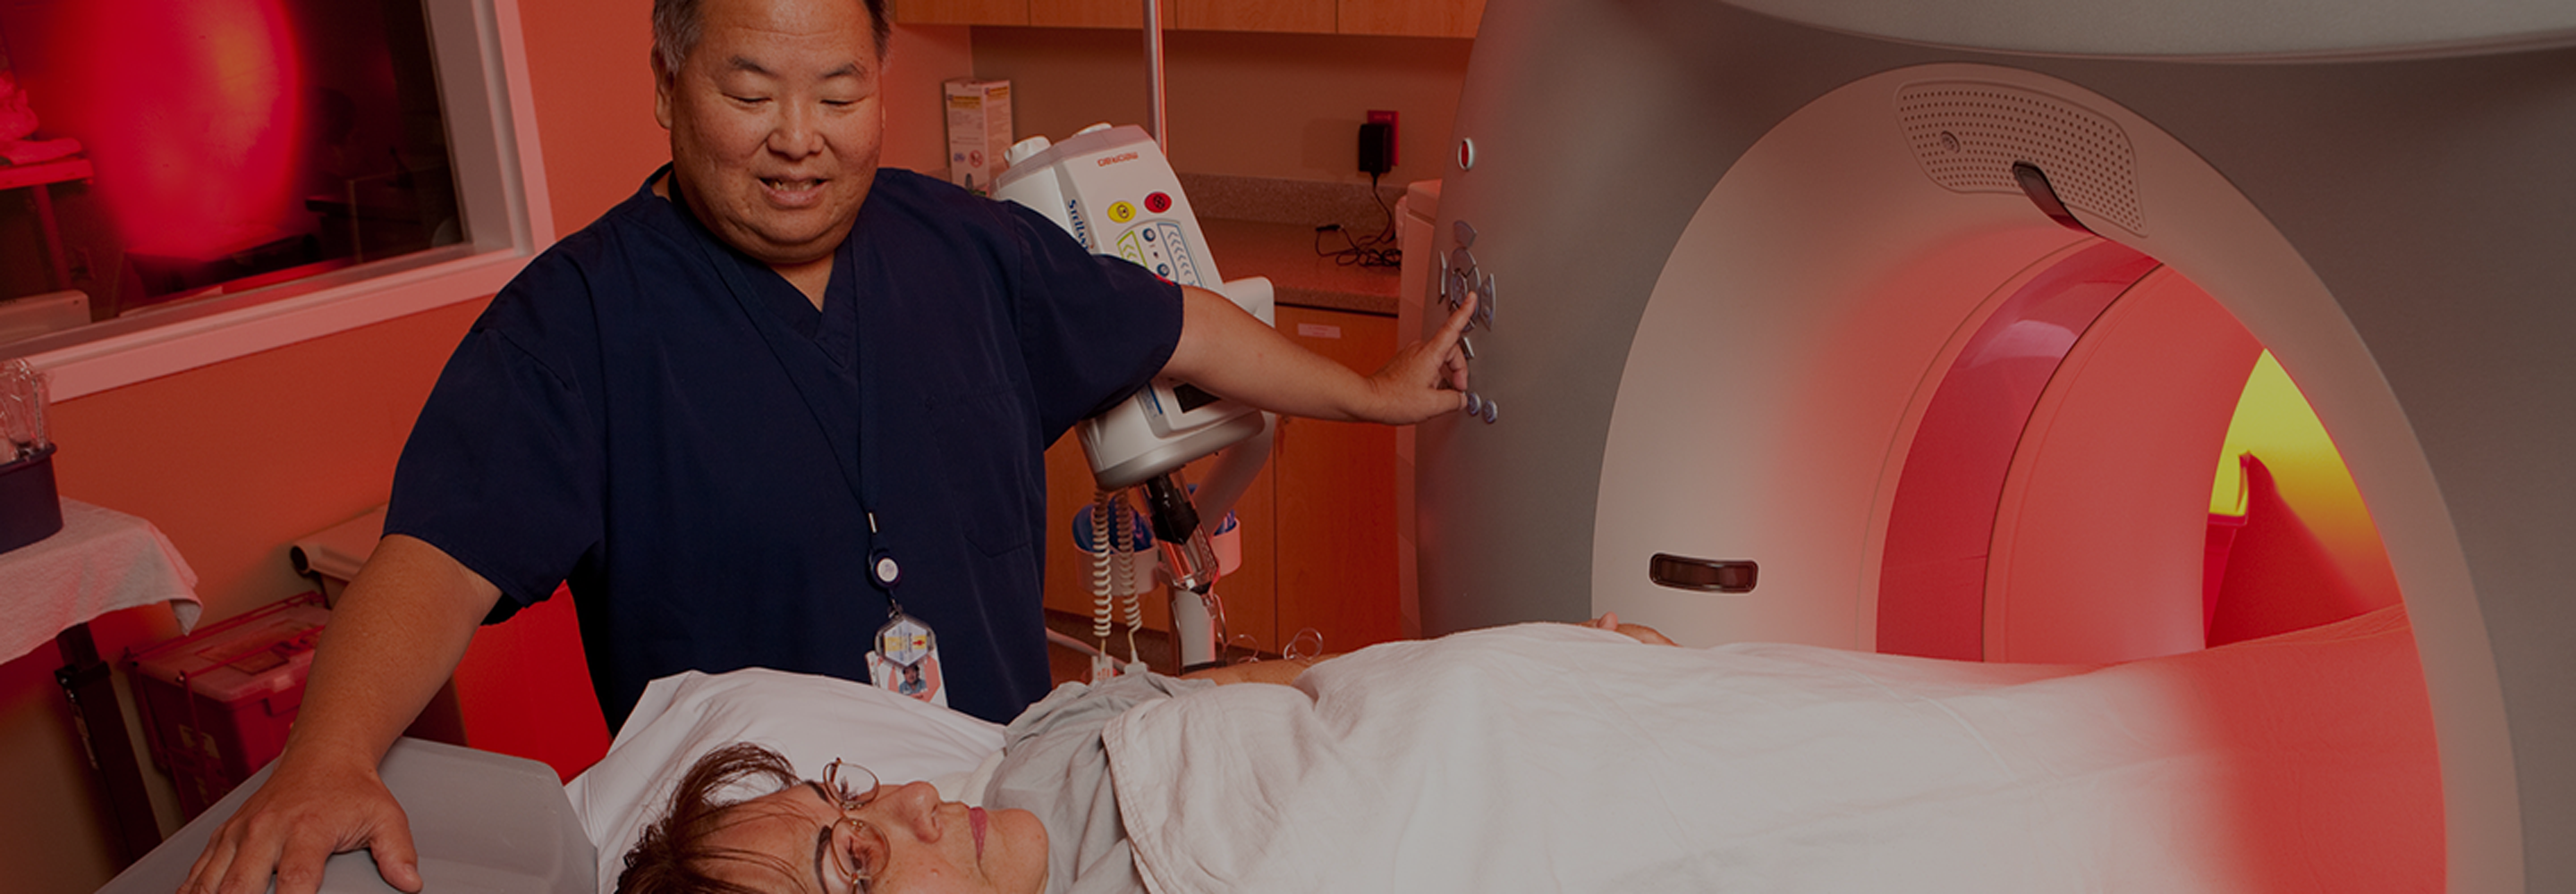 Medical imaging category desktop banner